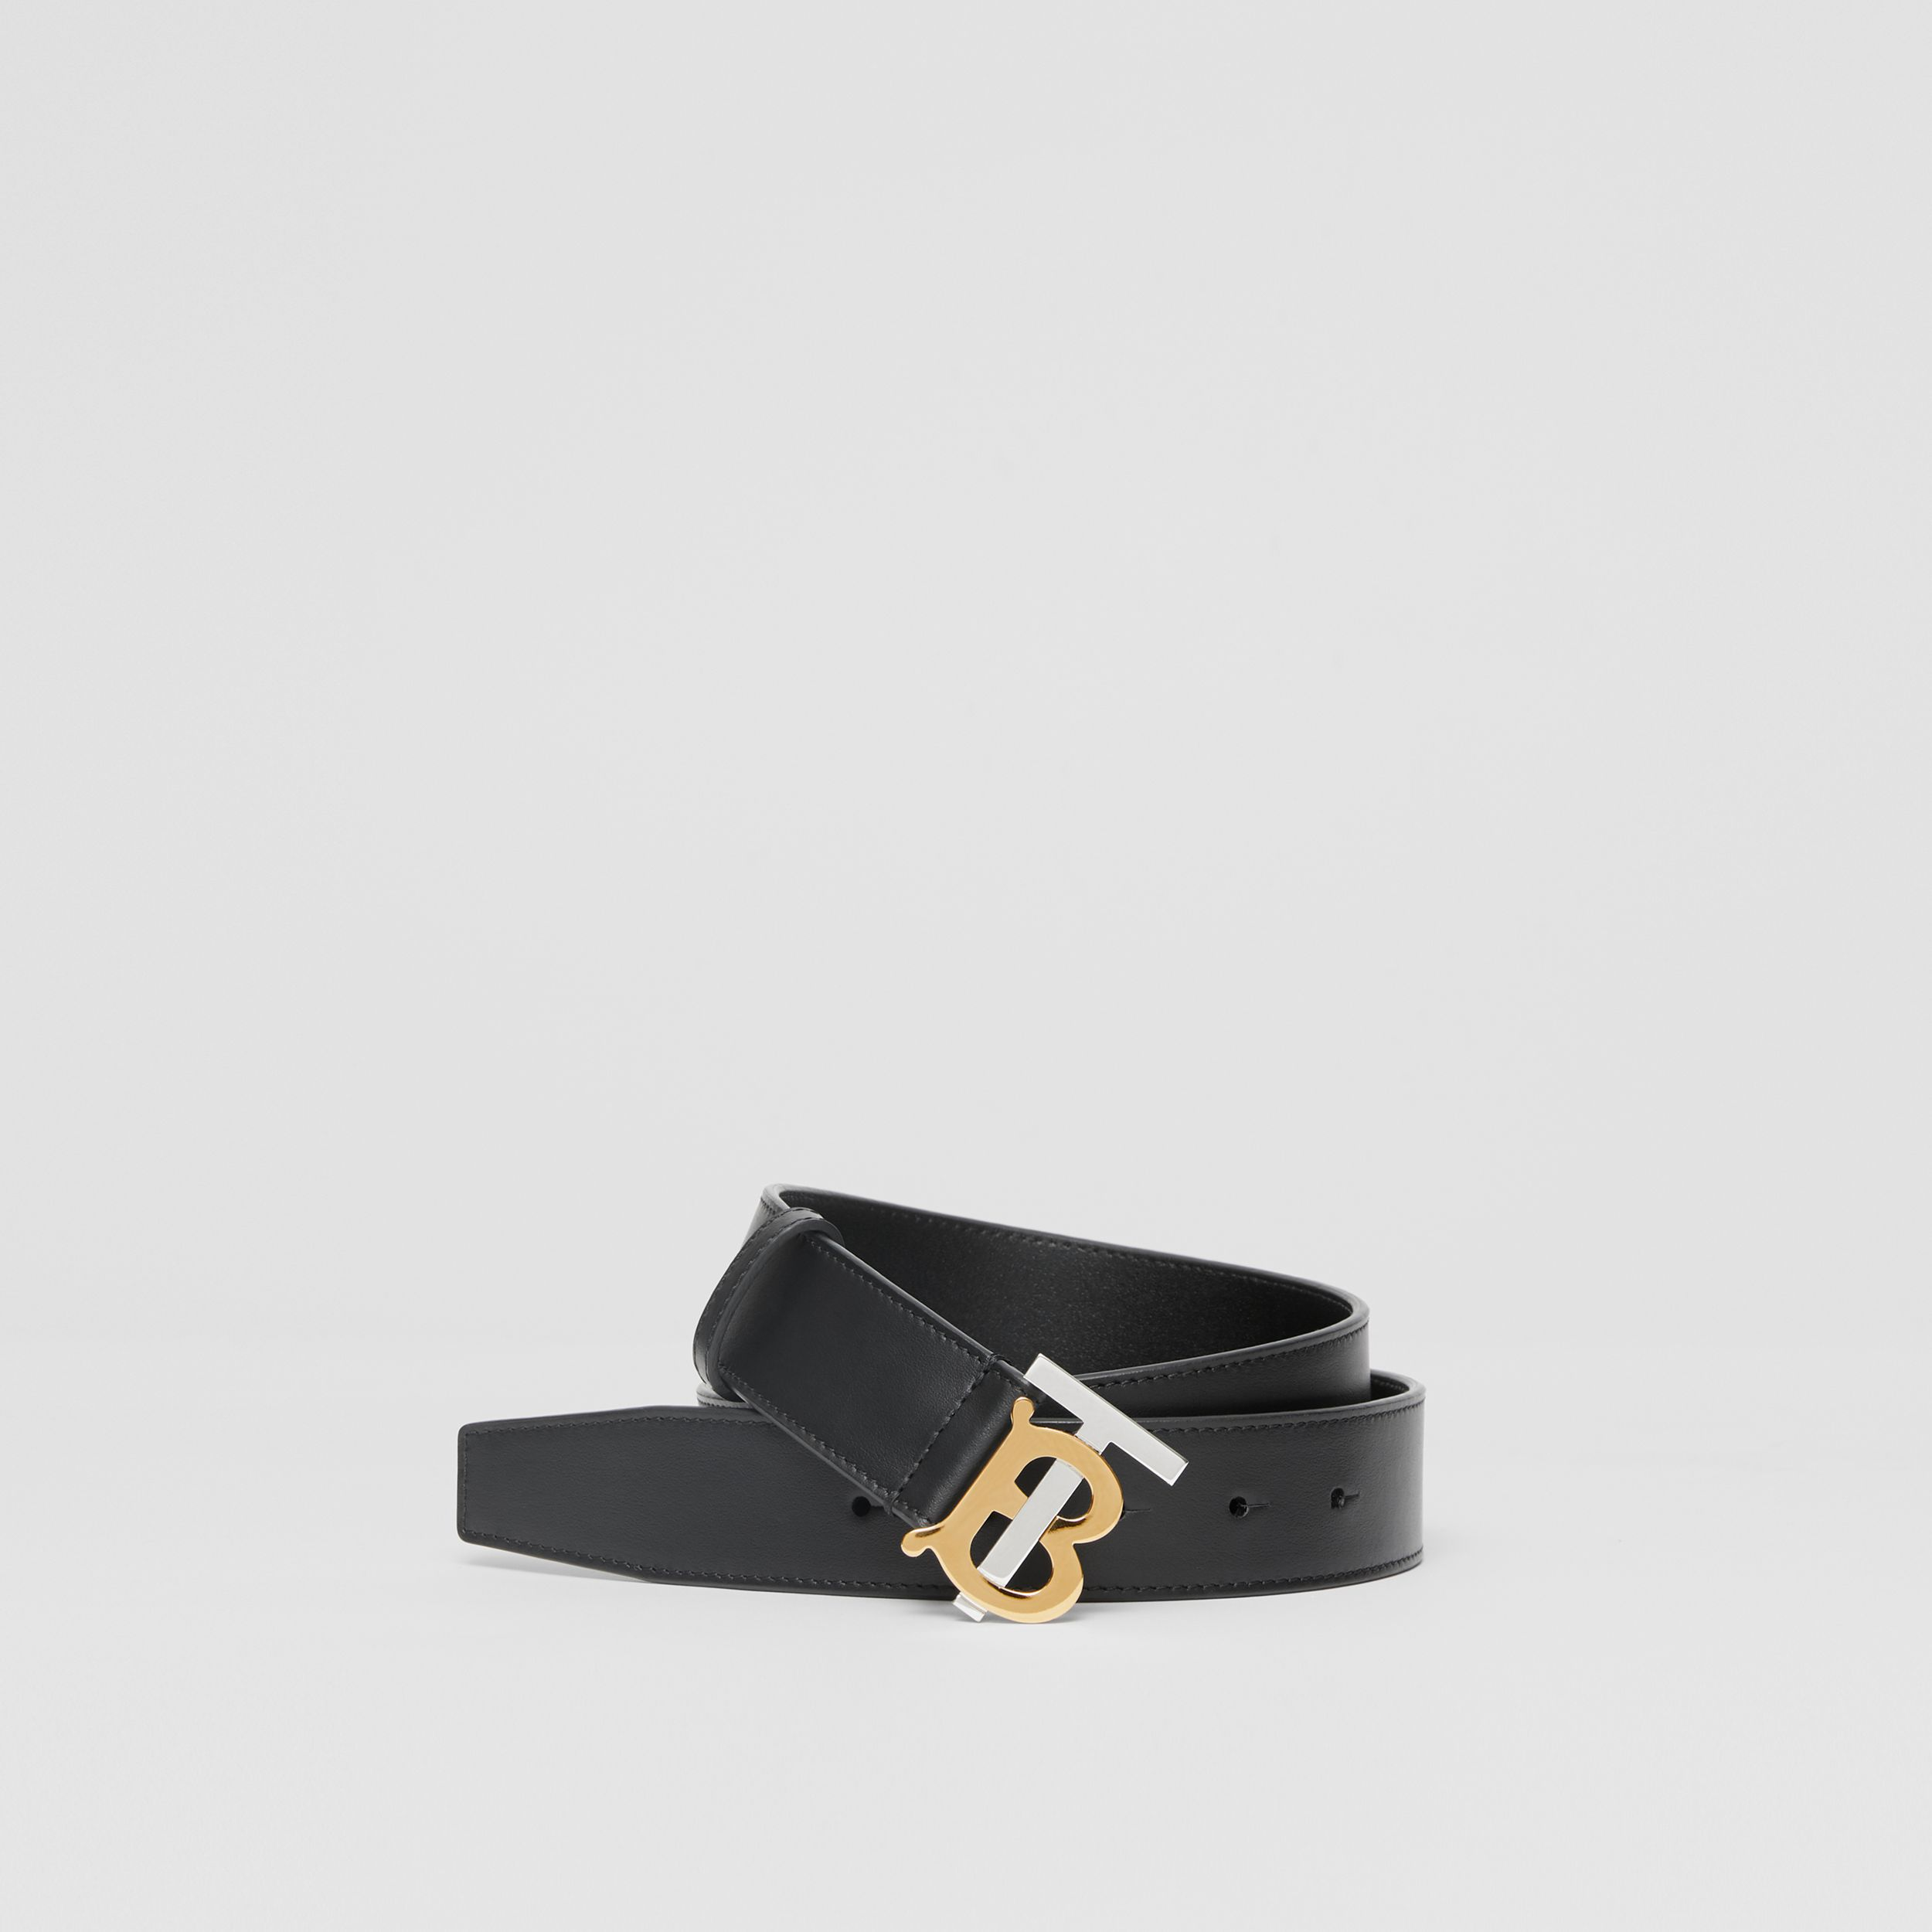 Two-tone Monogram Motif Leather Belt in Black - Men | Burberry Canada - 1